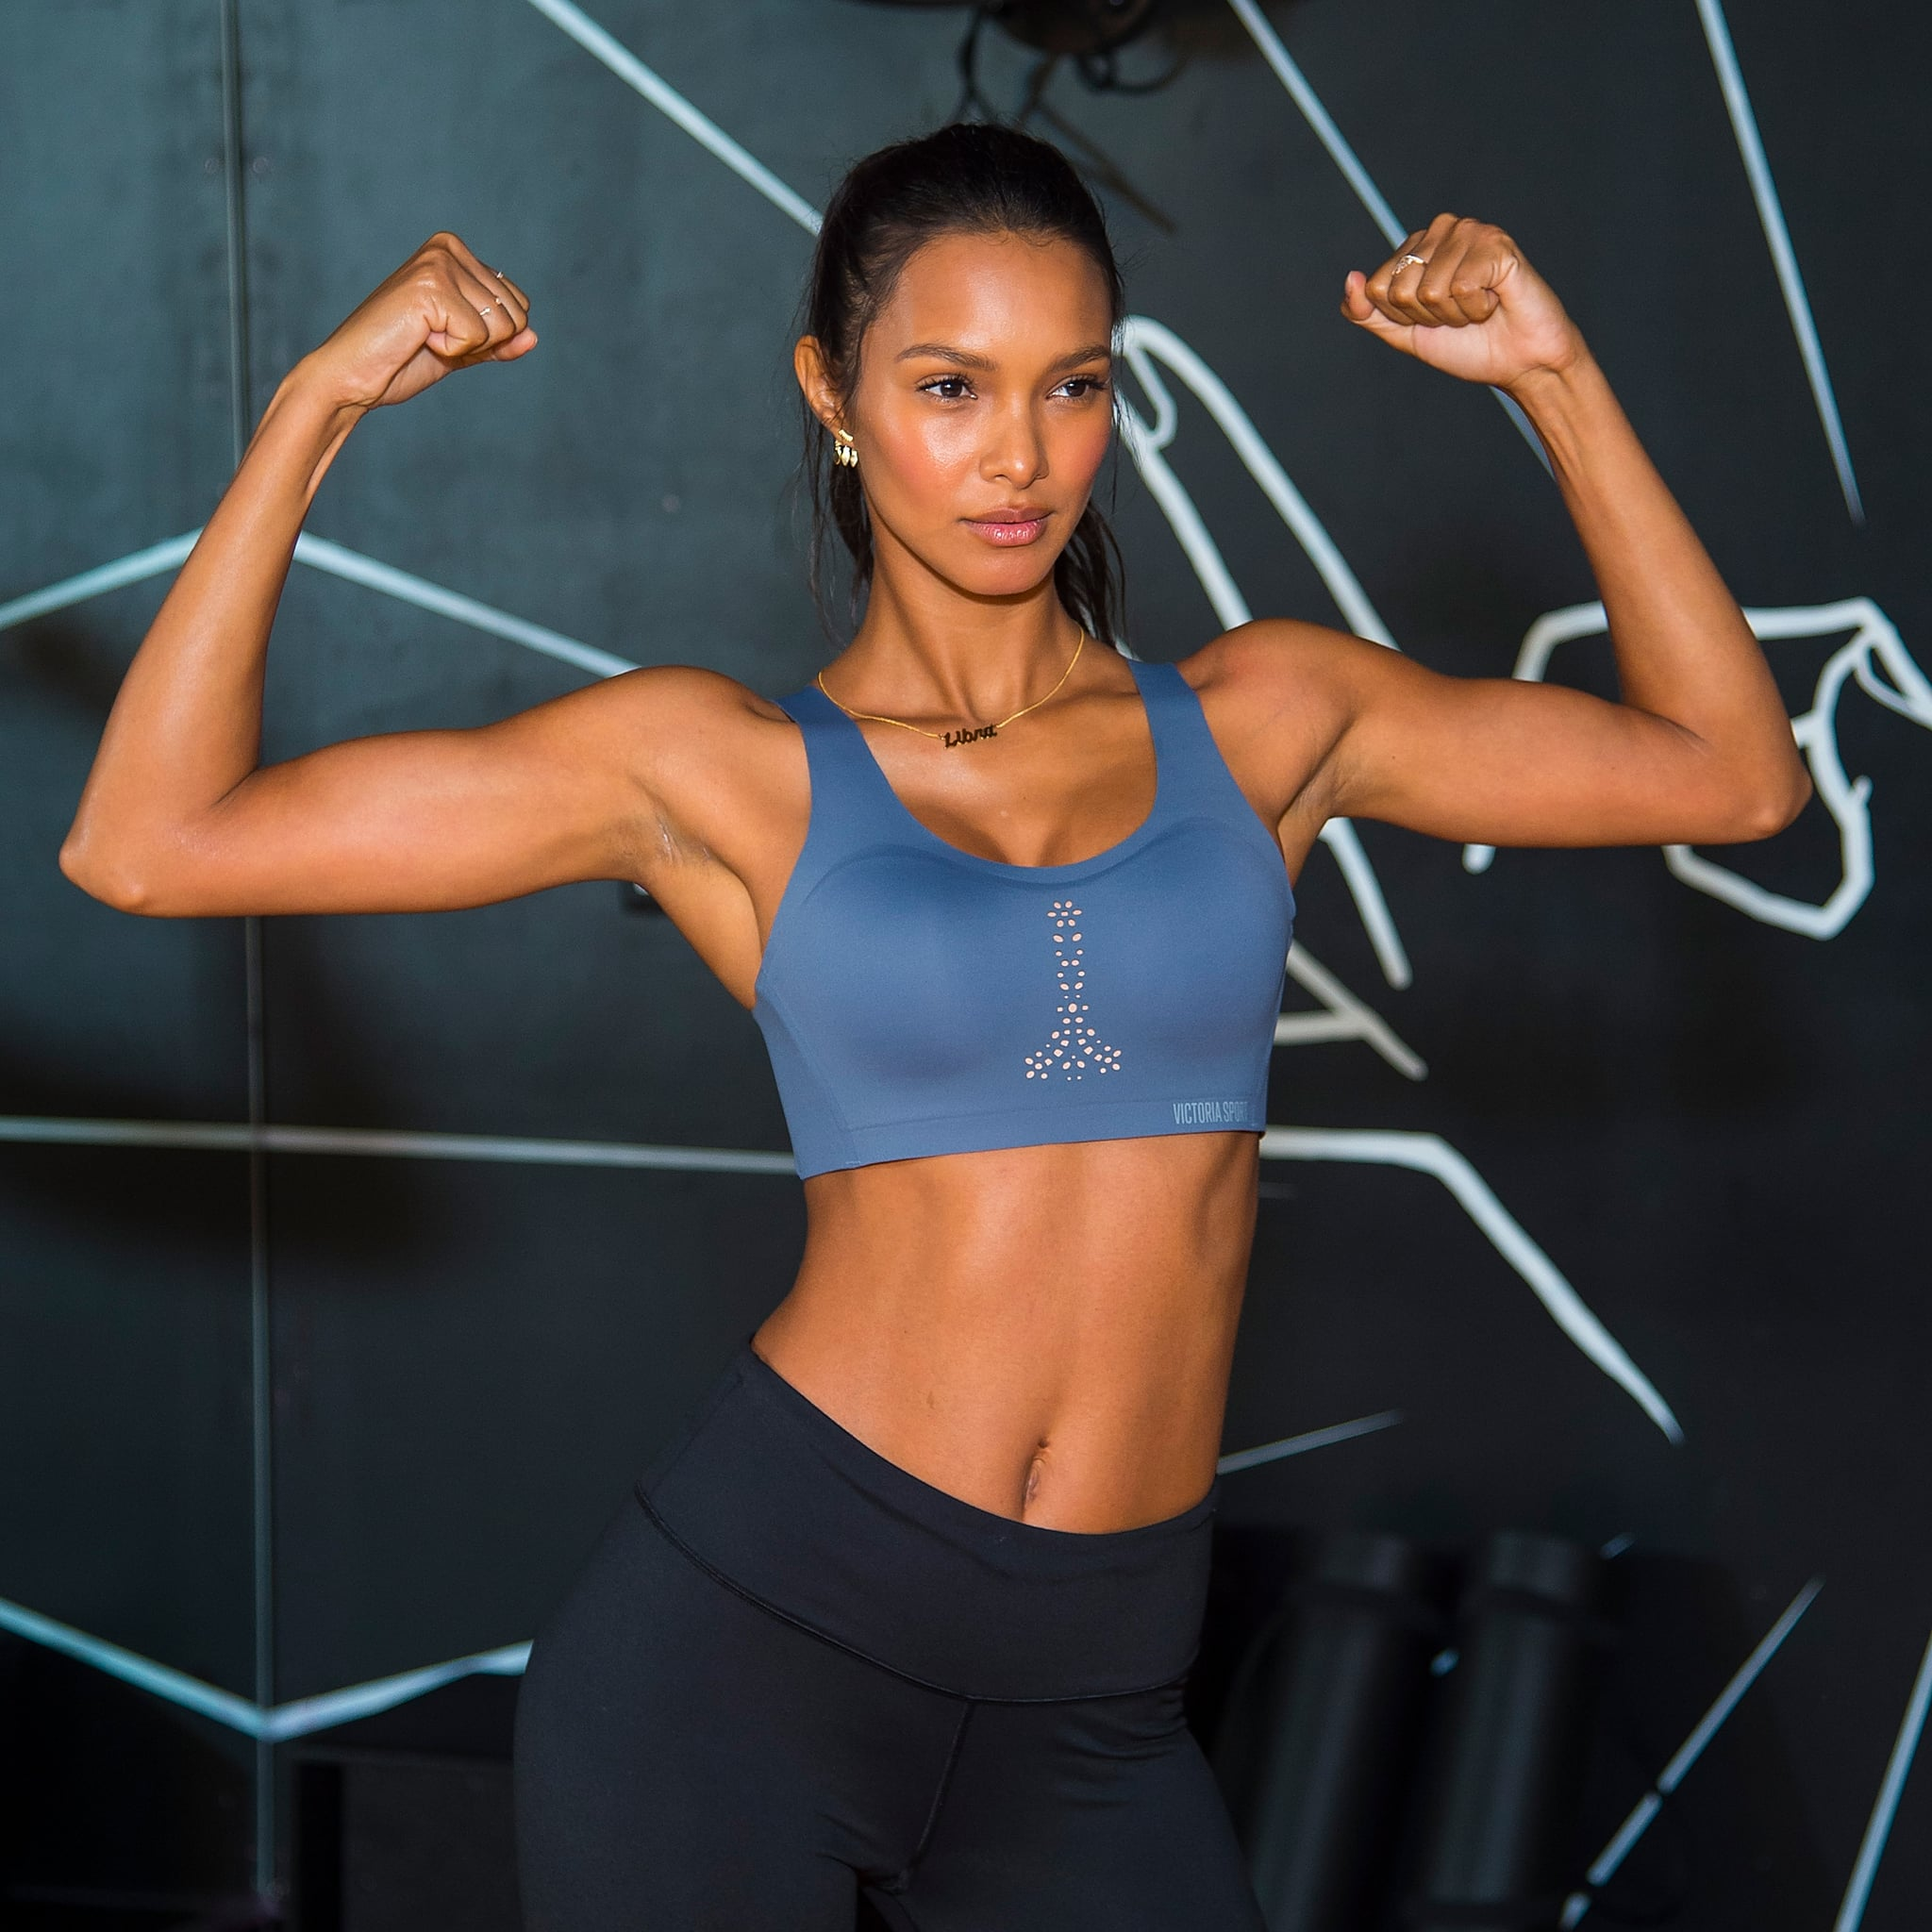 Weight loss tips from victorias secret models